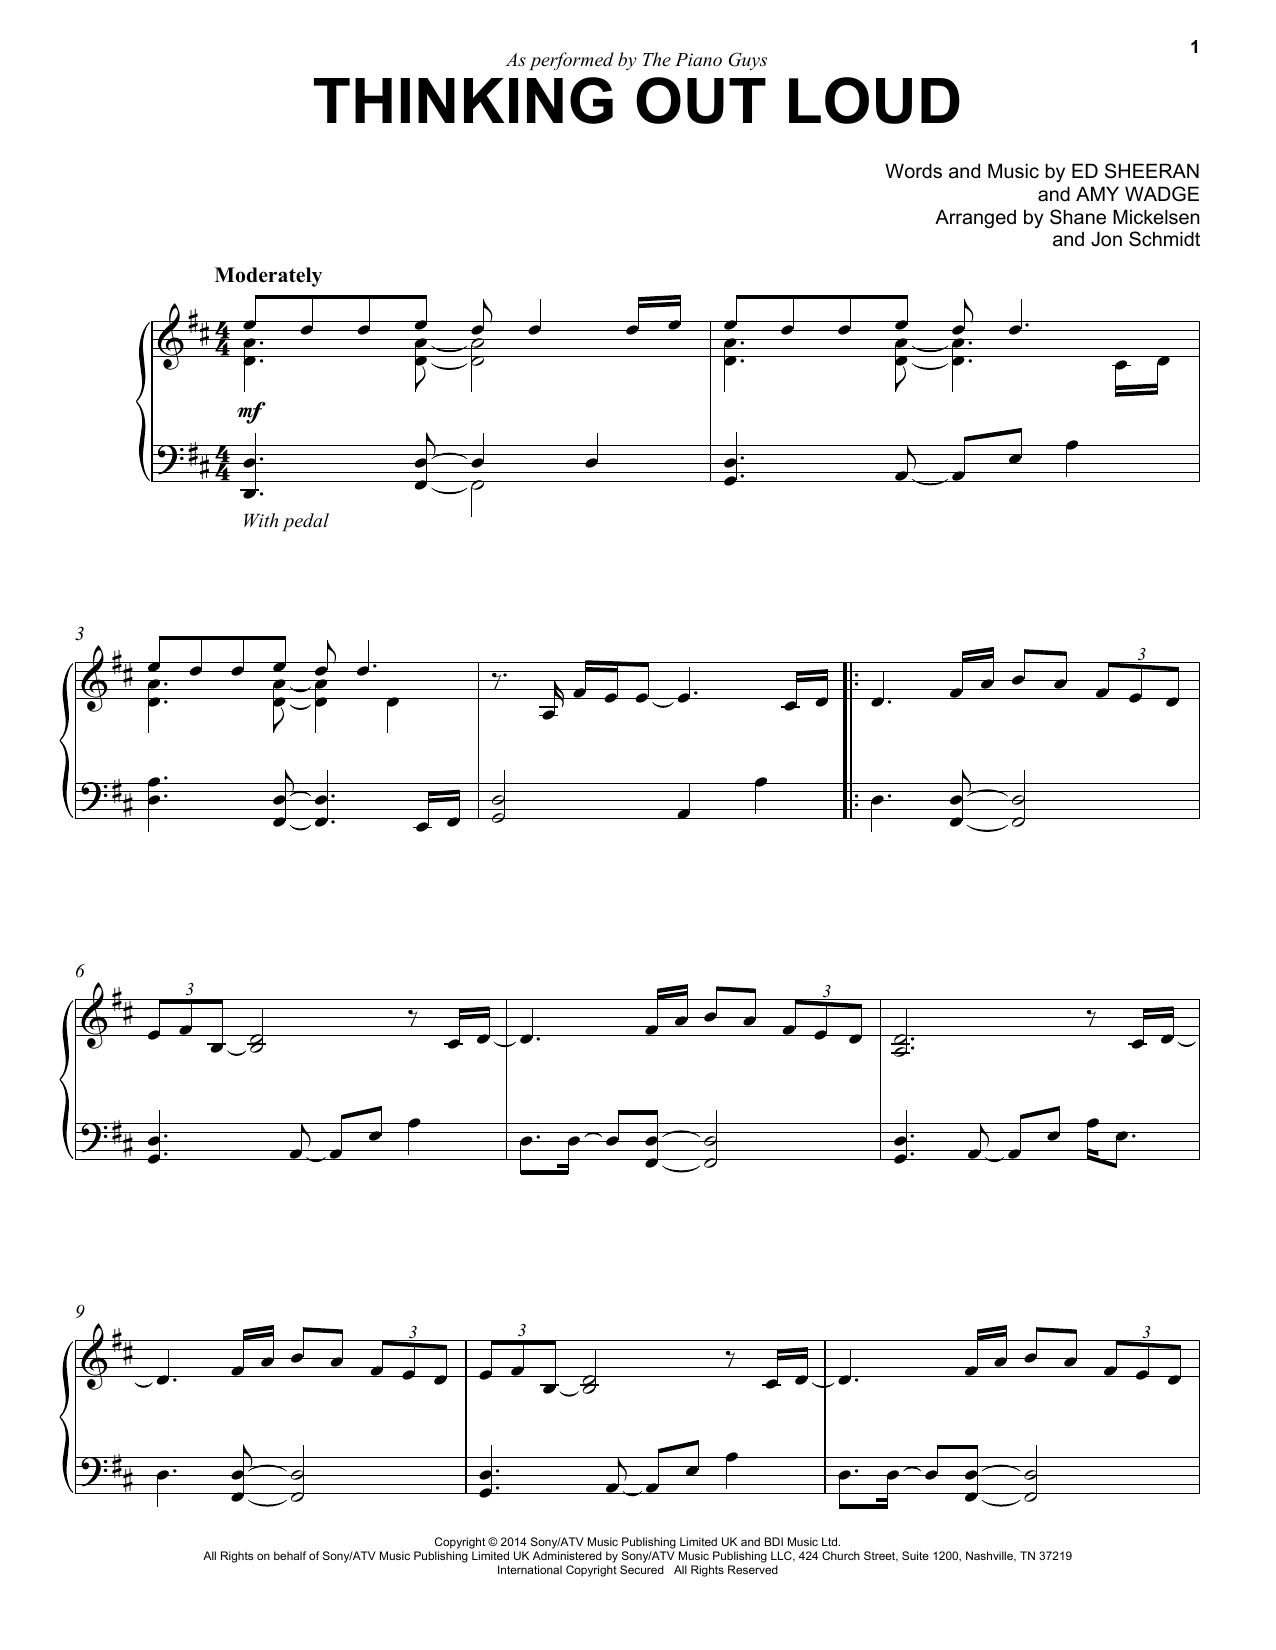 The Piano Guys Thinking Out Loud sheet music notes and chords